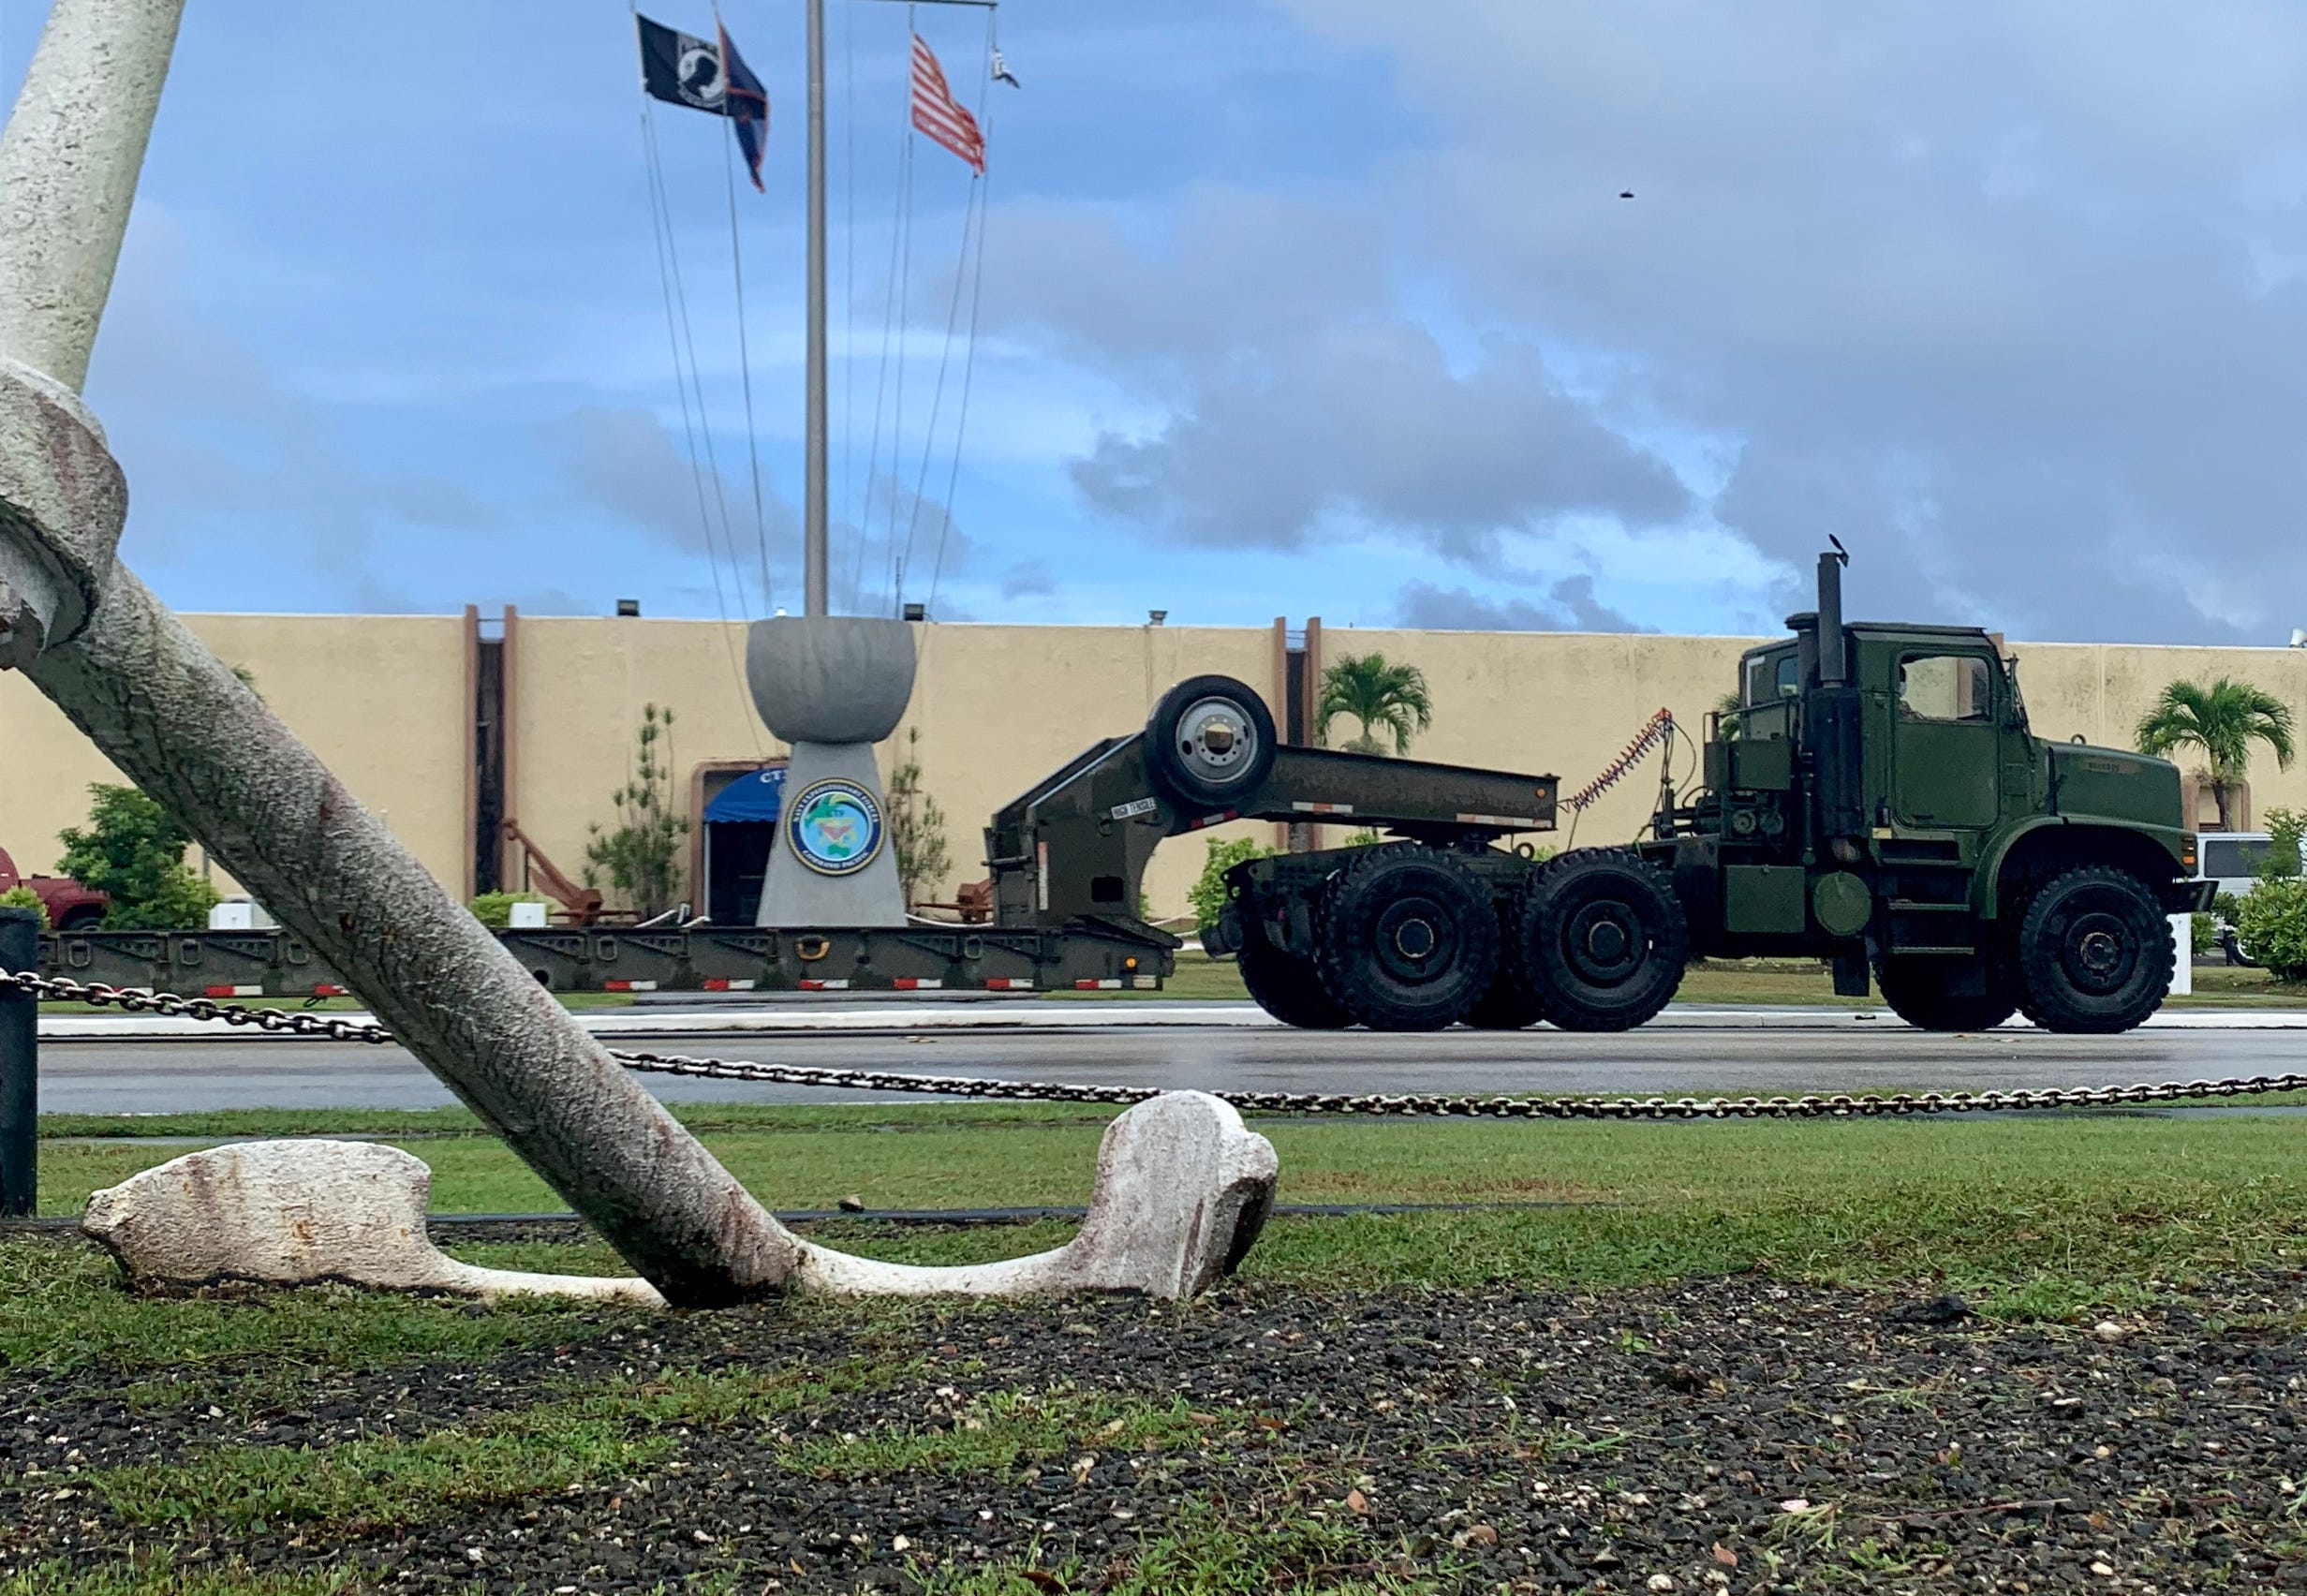 Nearly 50 Sailors from Navy Cargo Handling Battalion 1 and Naval Mobile Construction Battalion 133 deploy four tactical convoy operations from Camp Covington in support of Valiant Shield 2020.